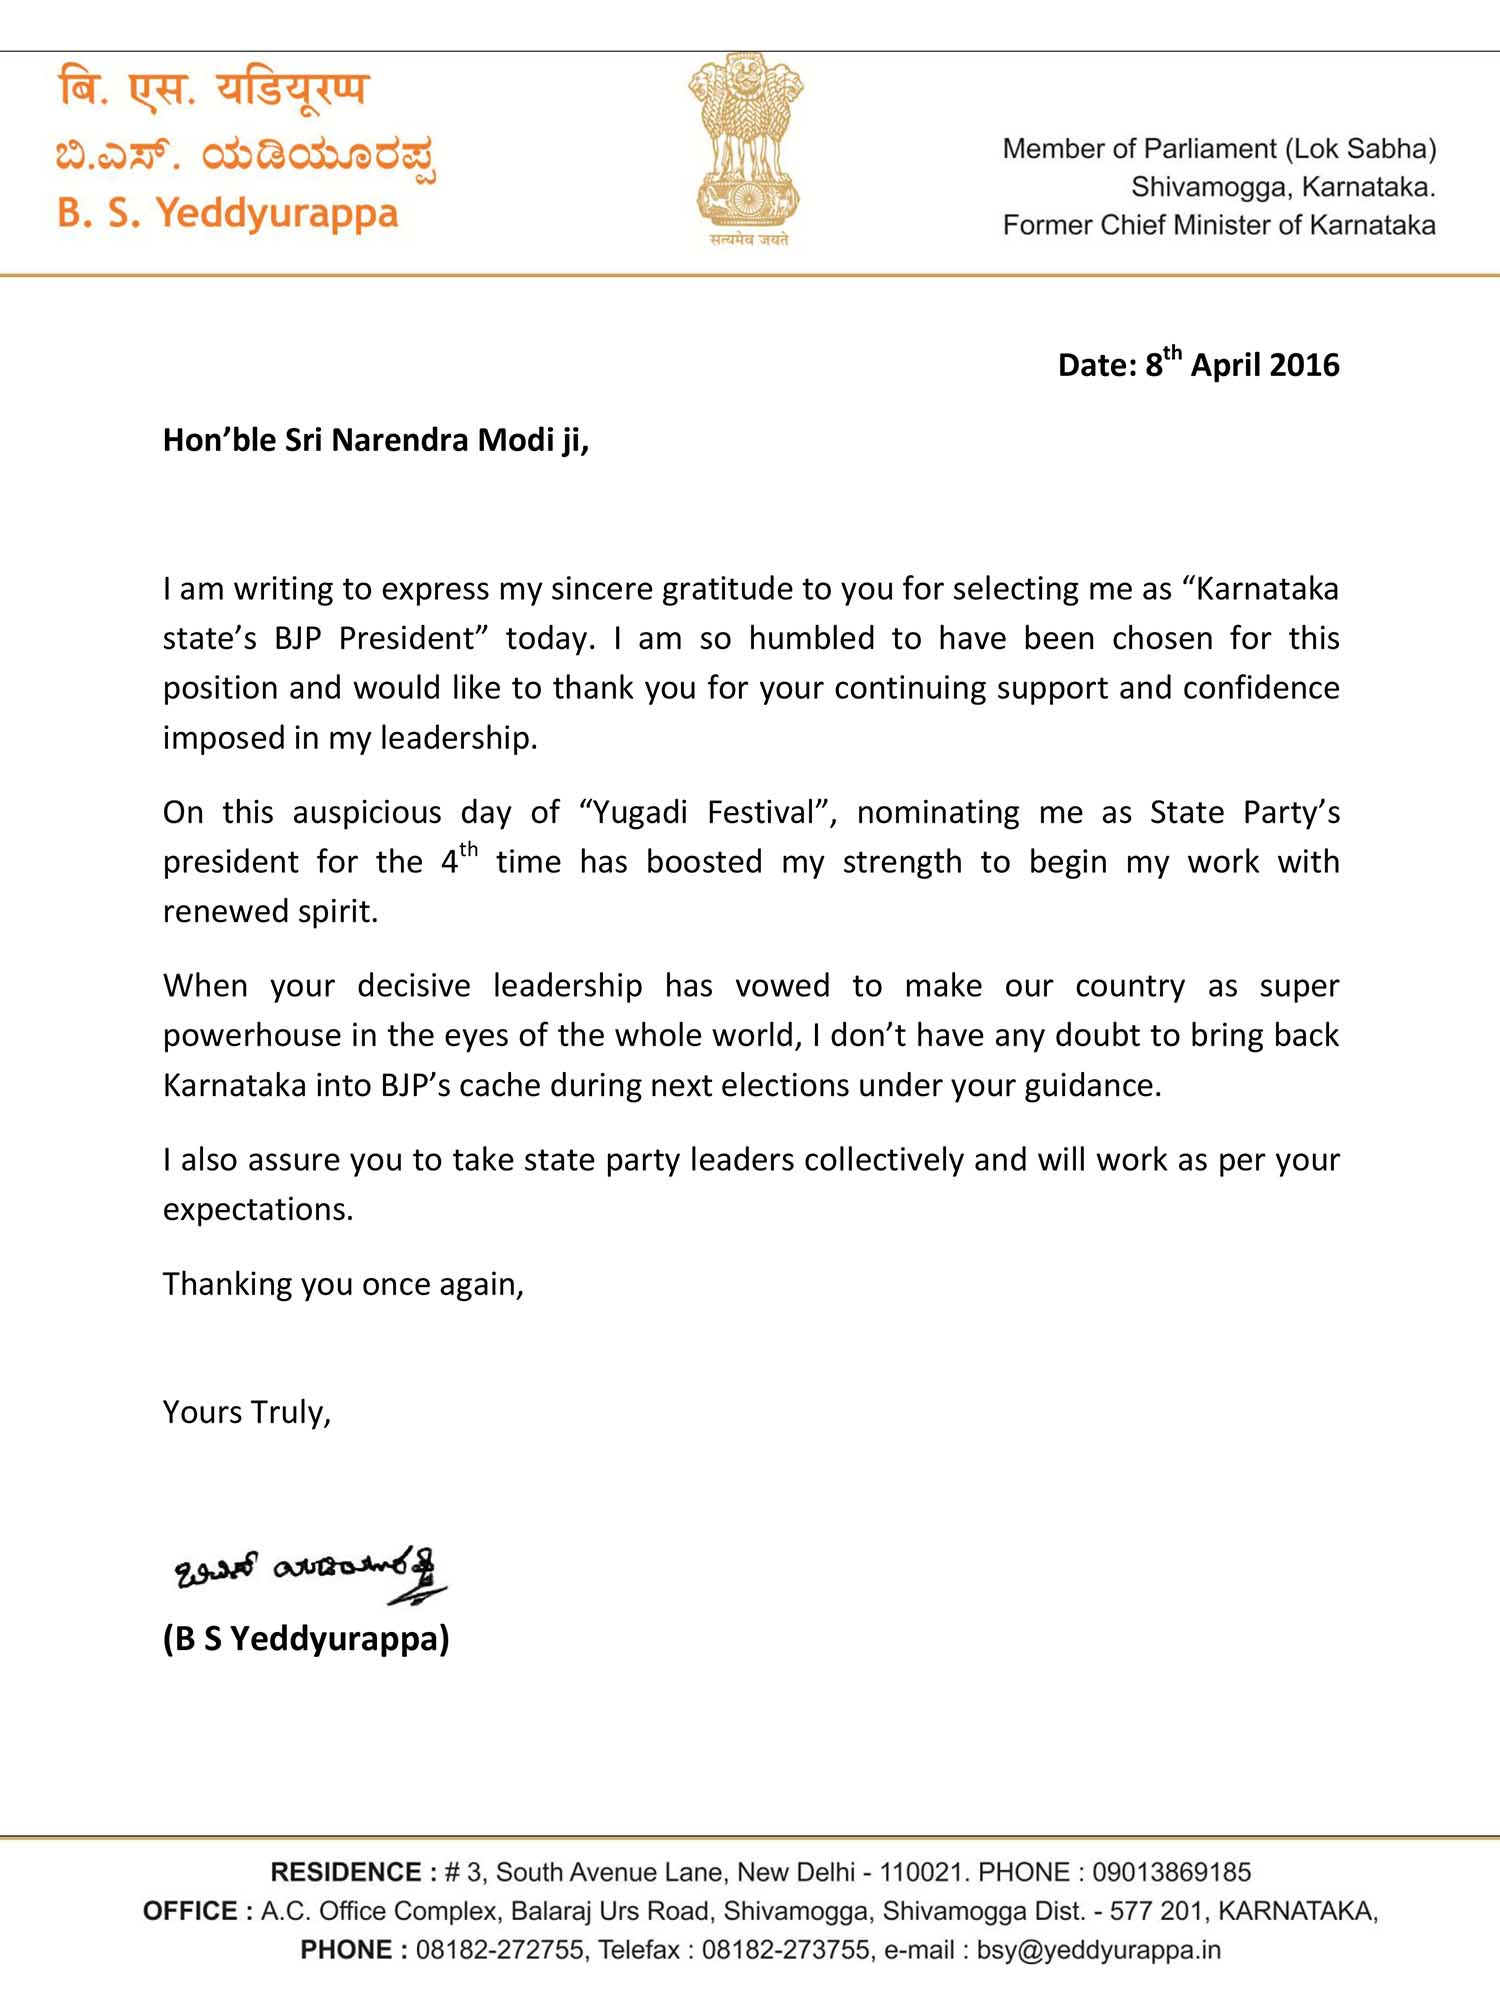 BSY Thanking Note to Shri Narendra Modi